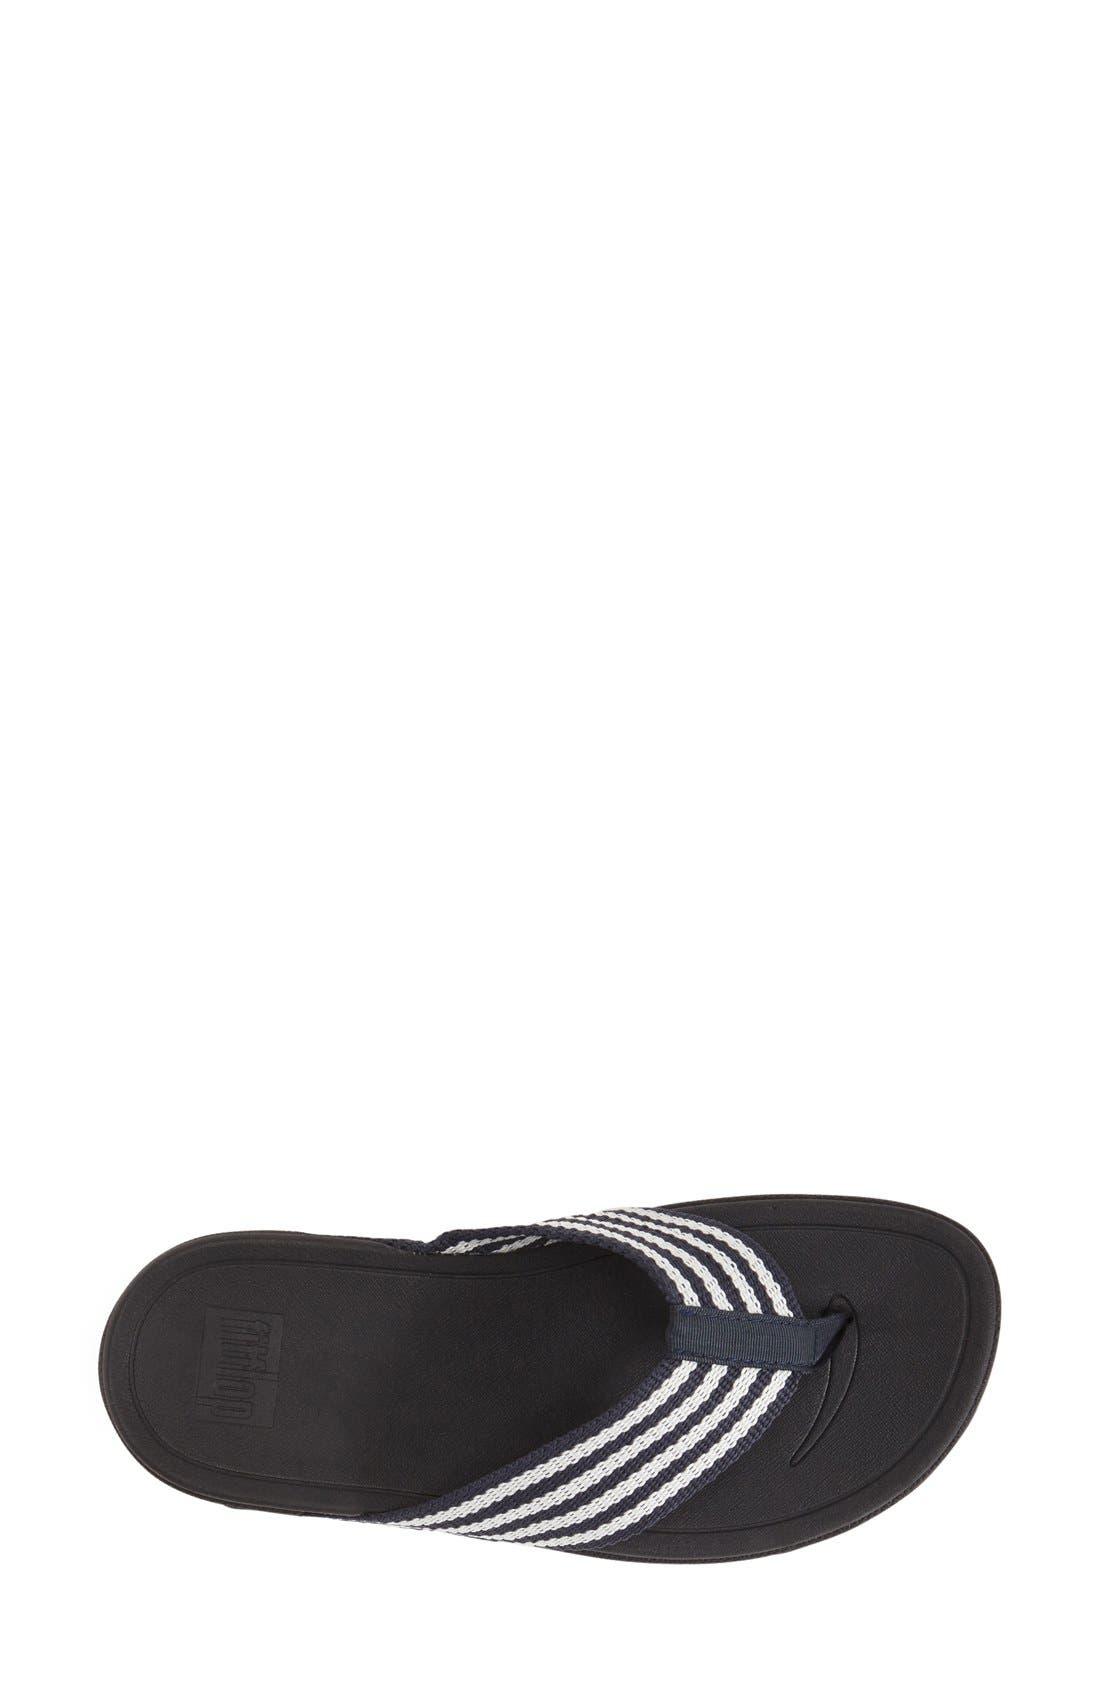 Alternate Image 3  - FitFlop™ 'Surfa' Thong Sandal (Women)